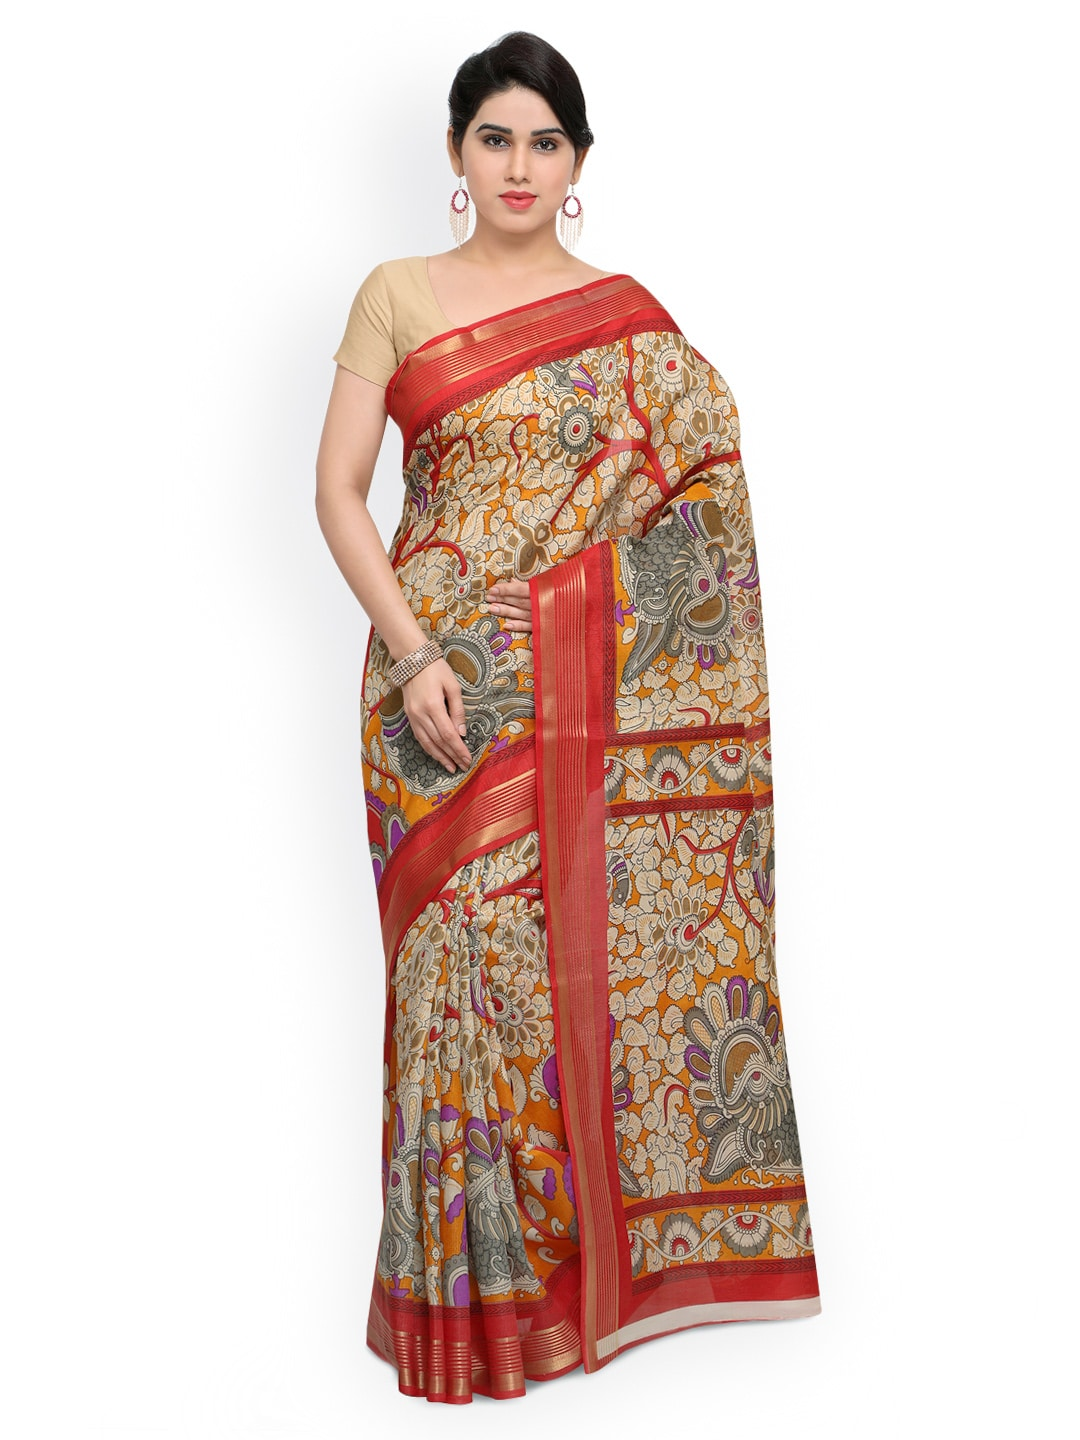 a731d22f93b38 Women Sarees Wallets - Buy Women Sarees Wallets online in India